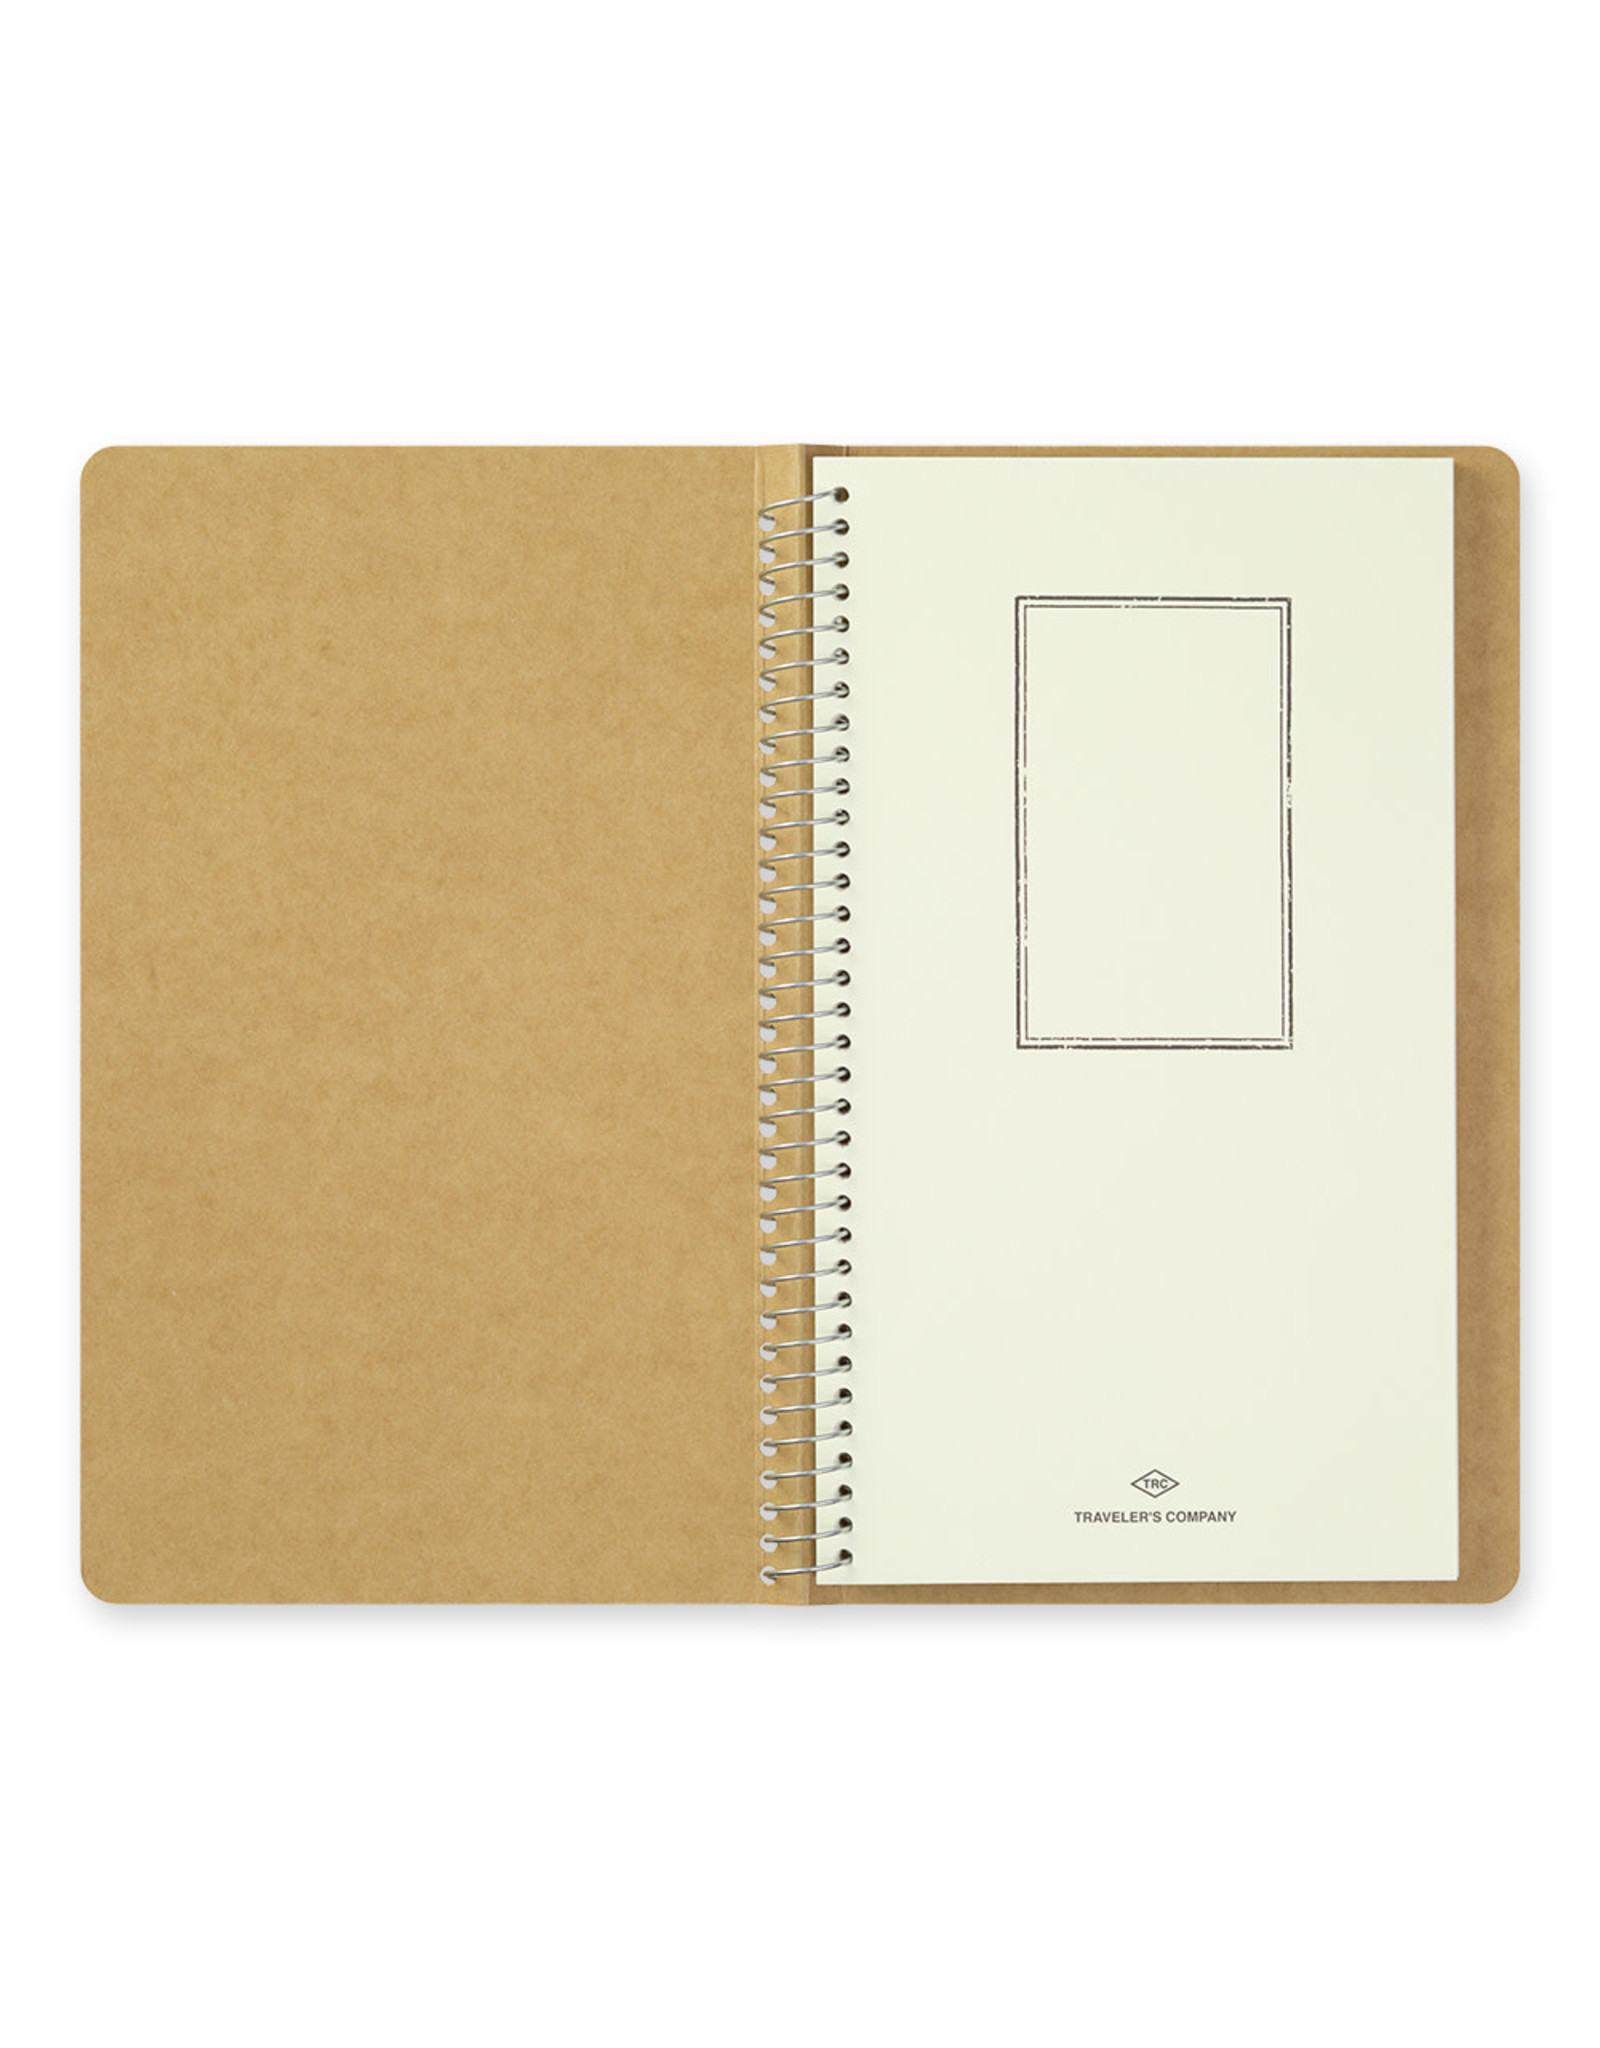 Traveler's Company SPIRAL RING NOTEBOOK A5 SLIM WATERCOLOR PAPER 20 SHEETS (40 PAGES)